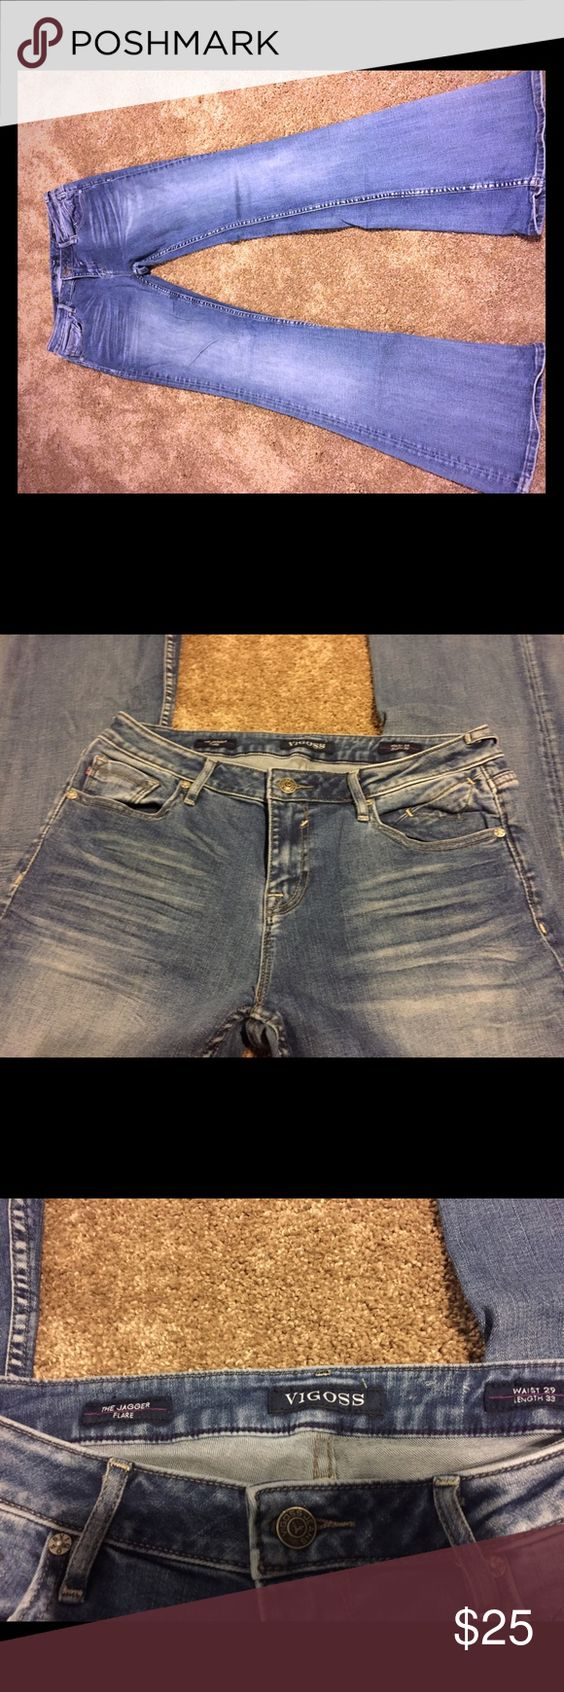 "Vigoss jagger flare Vigoss jagger flare jeans. Worn twice. Do not fit me anymore. They have a little stretch to them and are quite comfortable. Have a larger flare. Great condition. 33"" inseam Vigoss Jeans Flare & Wide Leg"